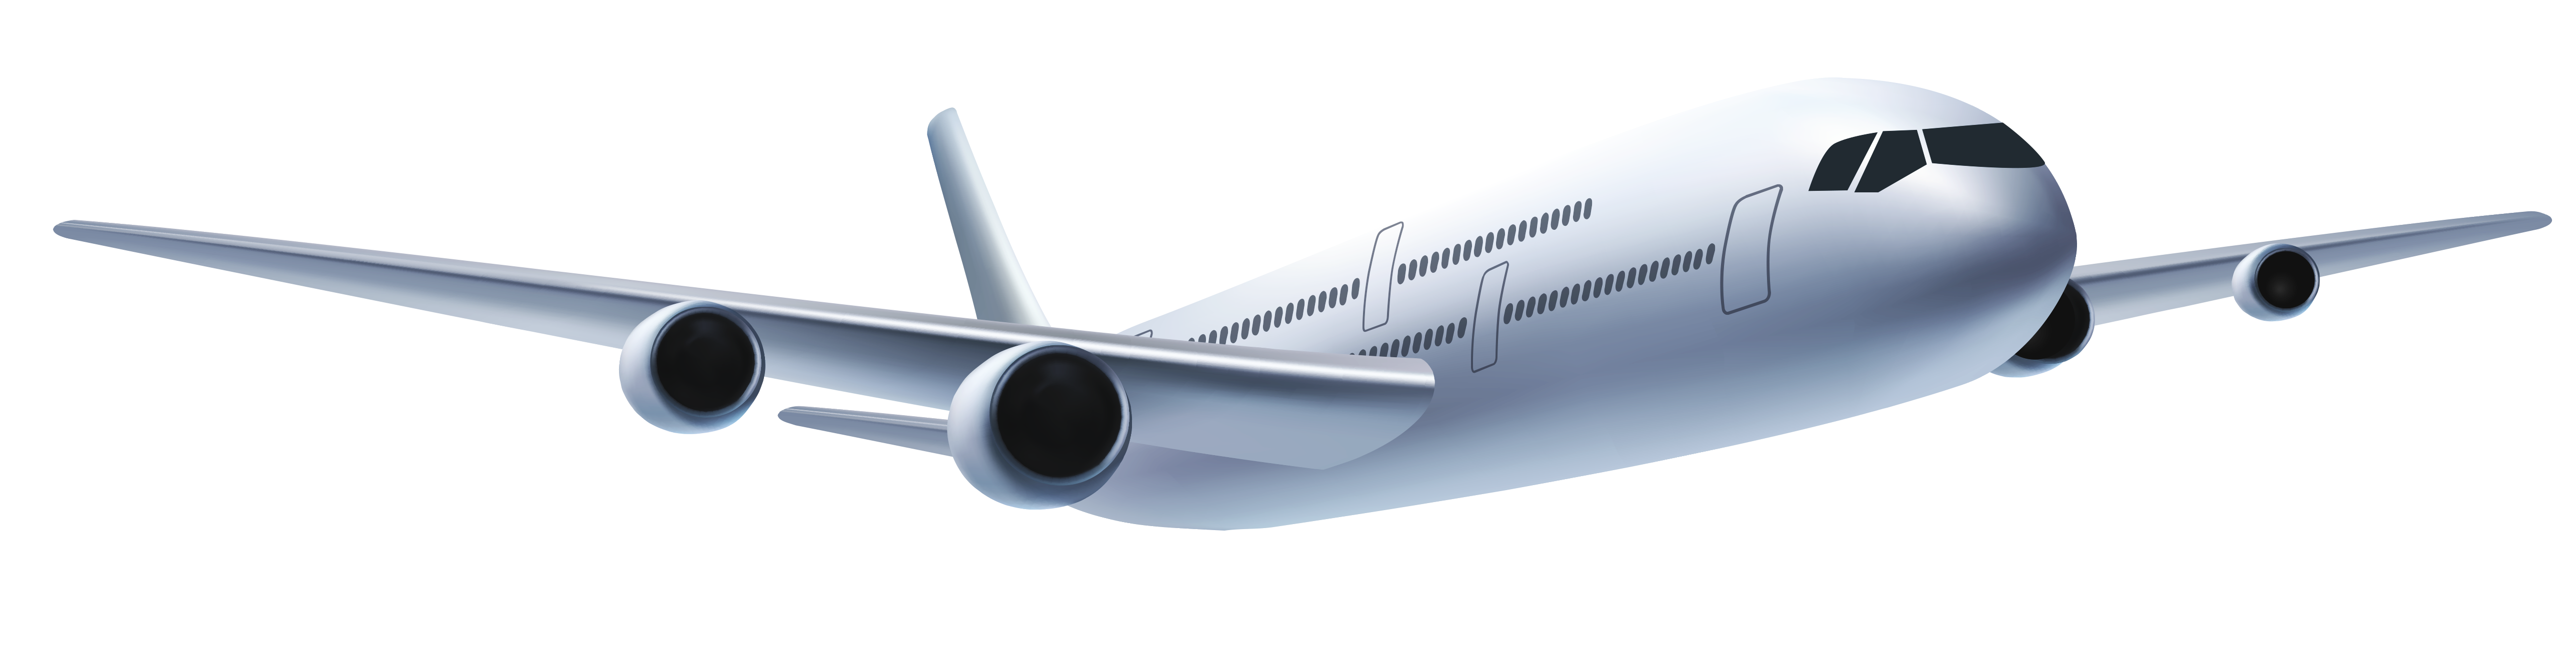 Plane Free Transparent Png PNG Images